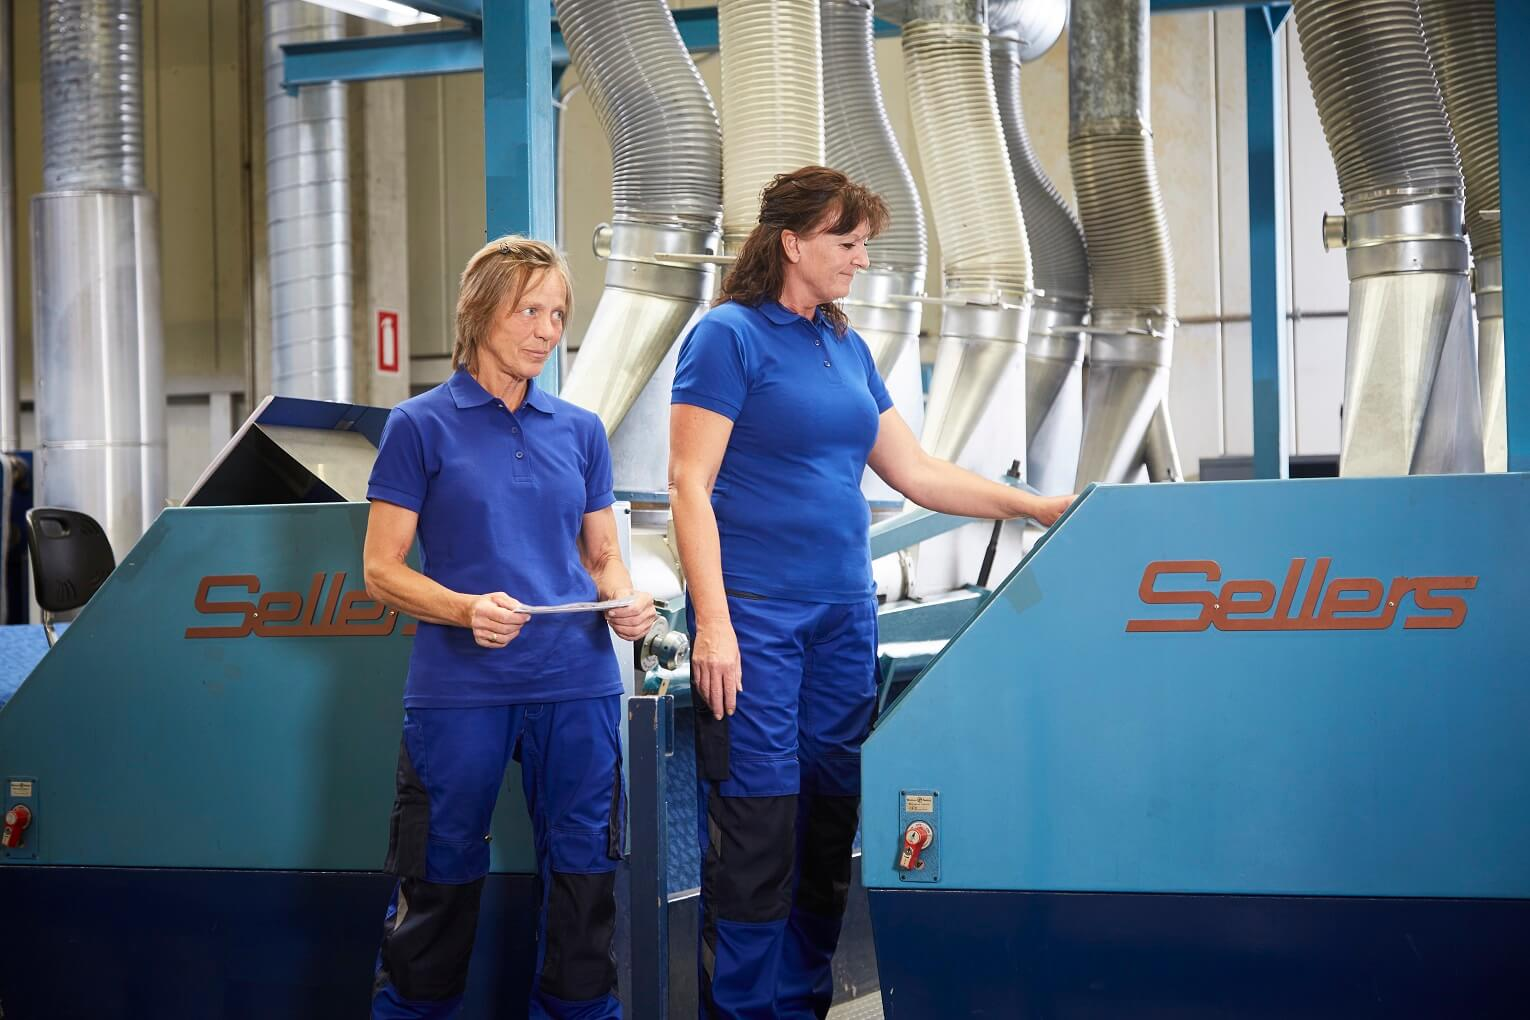 Factory - 2 Women - Royal blue Workwear